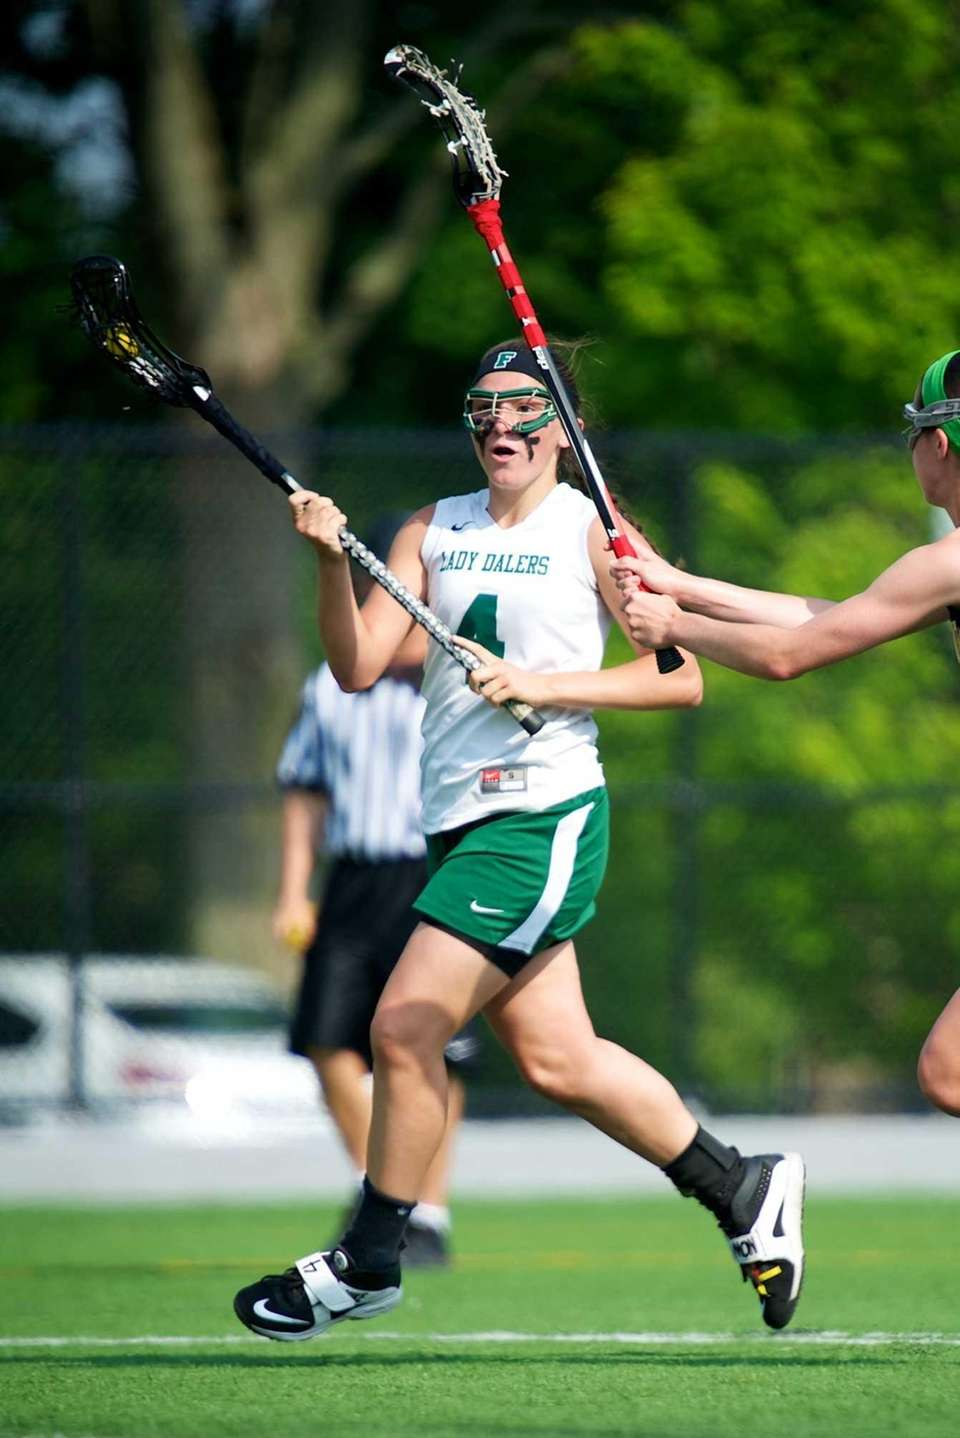 Farmingdale defender Samantha Brescia attempts to move the